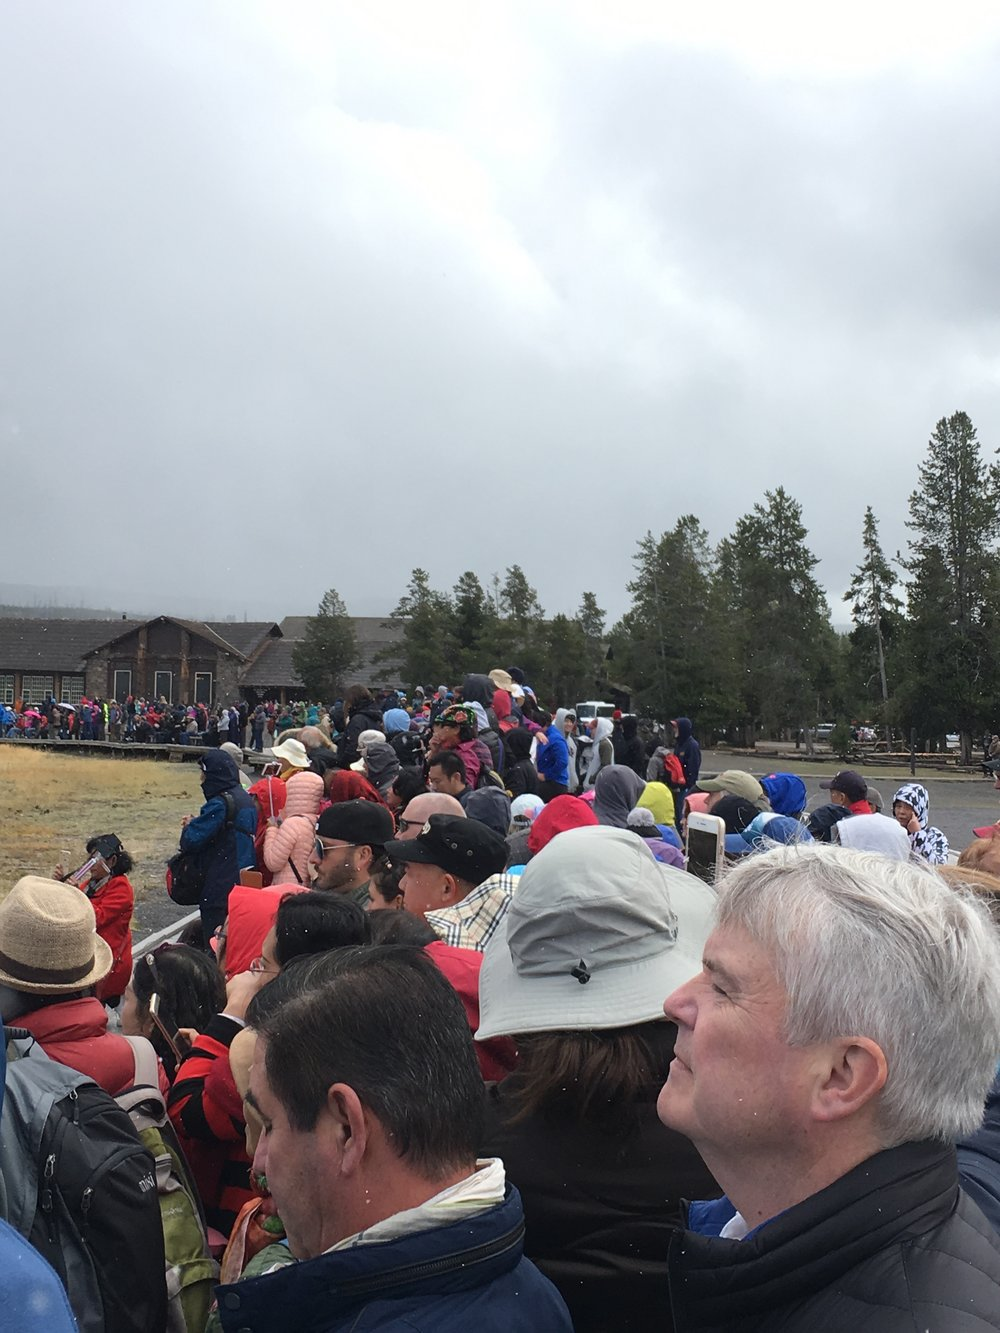 On a cold, rainy, misty, snowy day, there were a lot of people on hand to watch the 1:22 pm performance of Old Faithful.  The viewing area is about 300 feet from the geyser, and pretty much encircles the geyser.  The platform was packed all the way around 4 and 5 people deep.  As we stood waiting for the start, I kept wondering where all of these people had come from.